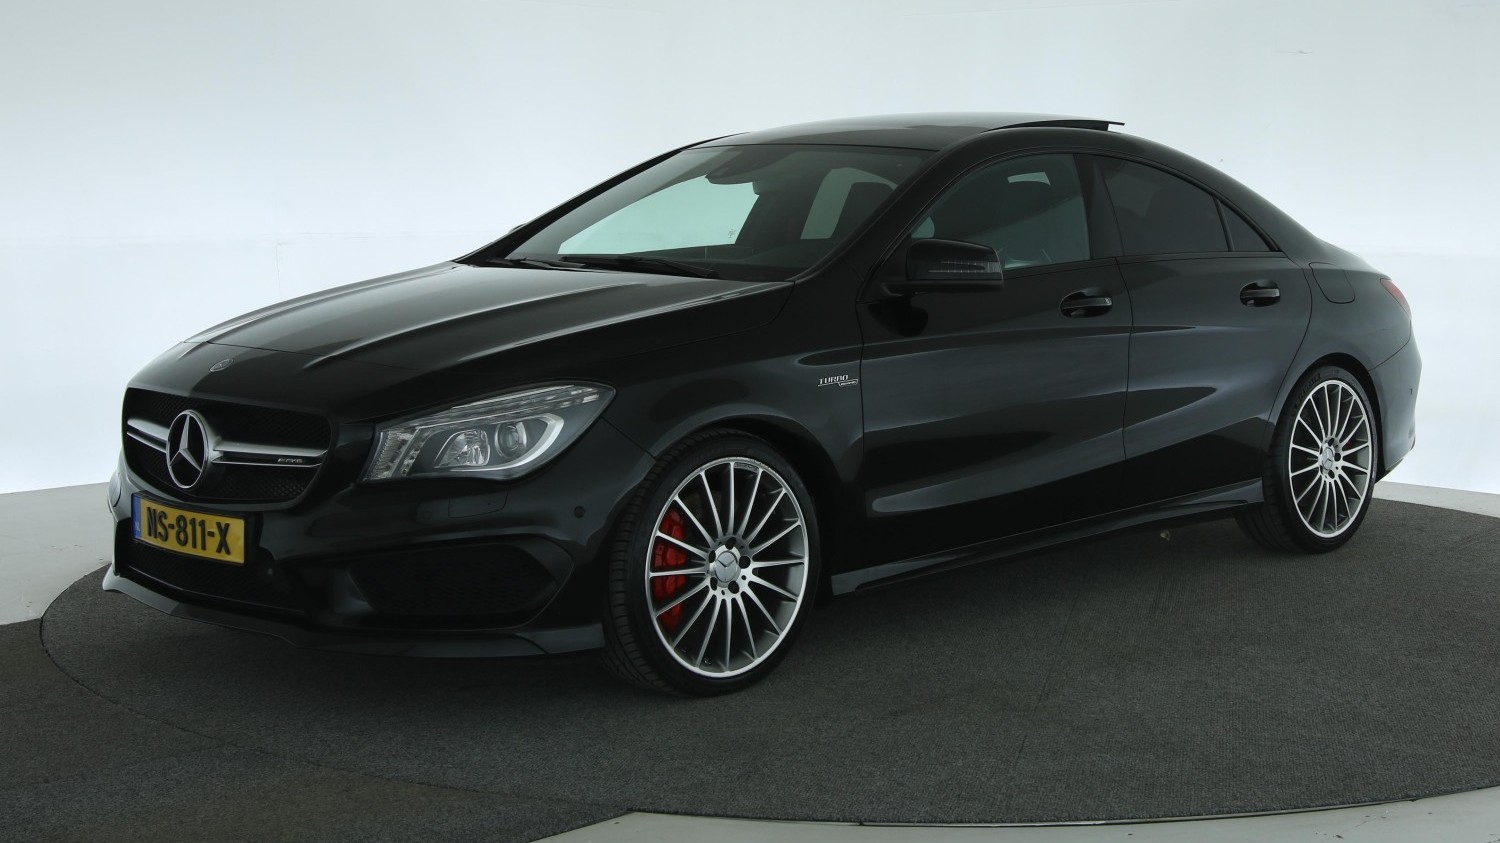 Mercedes-Benz CLA-klasse Sedan 2014 NS-811-X 1